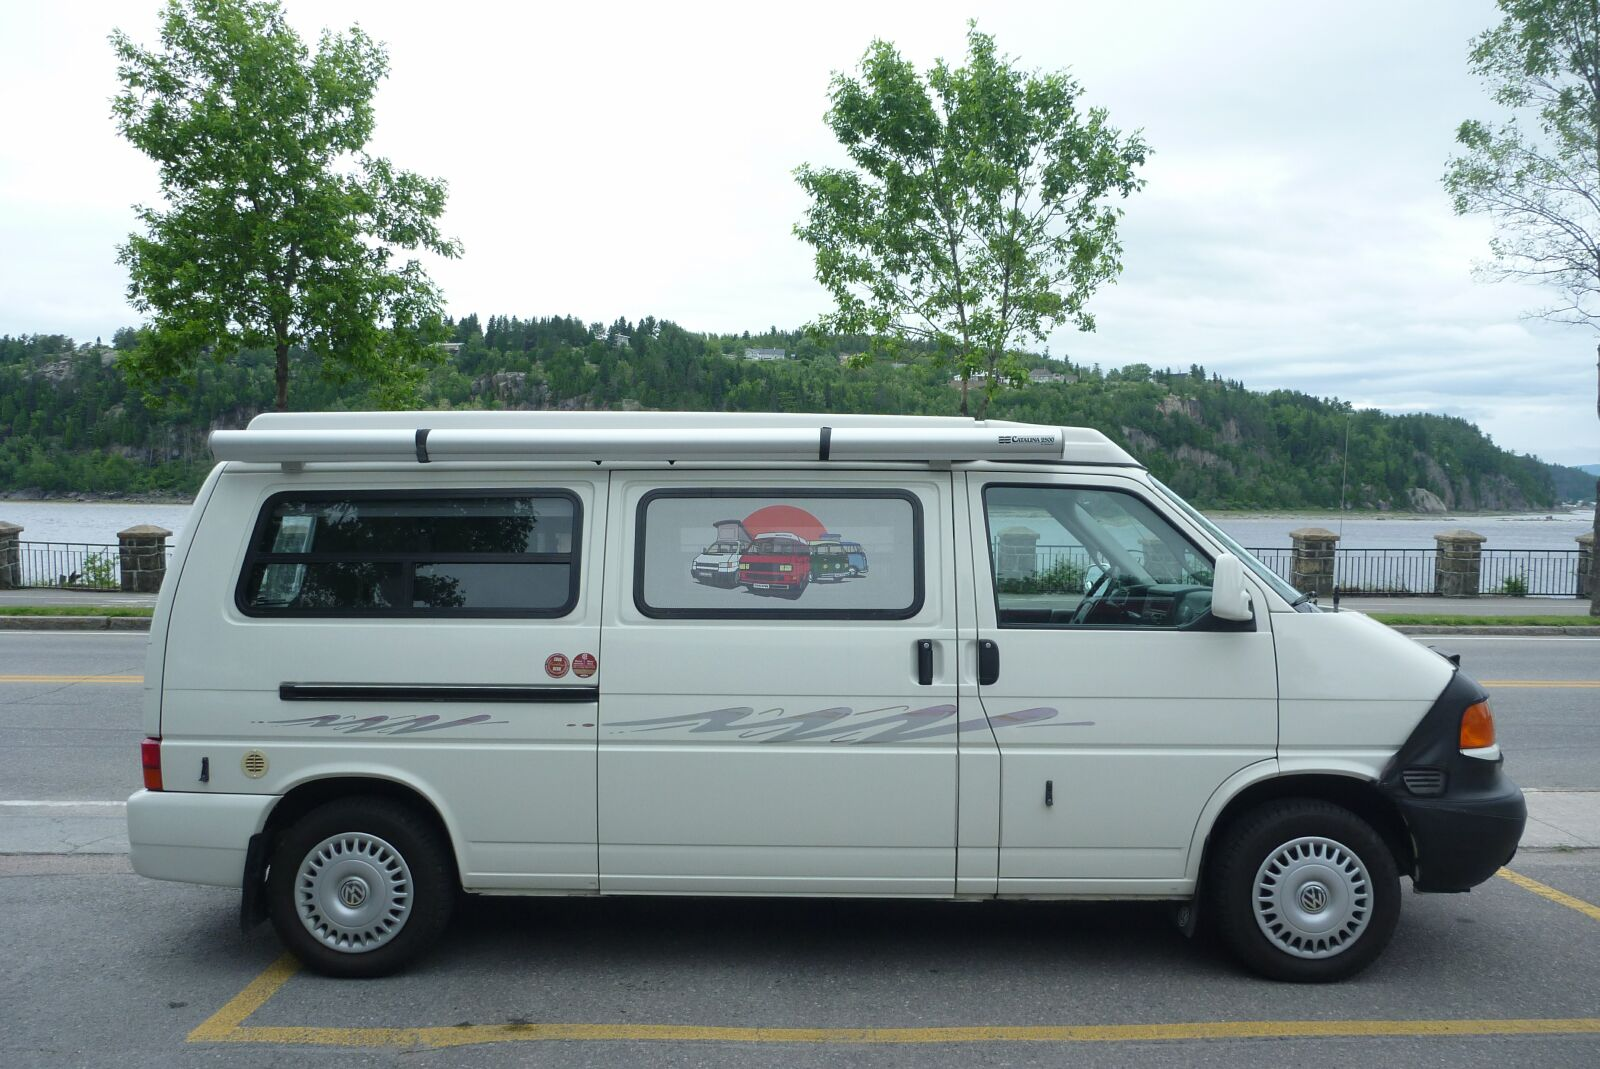 Club international de camping car westfalia for Interieur westfalia